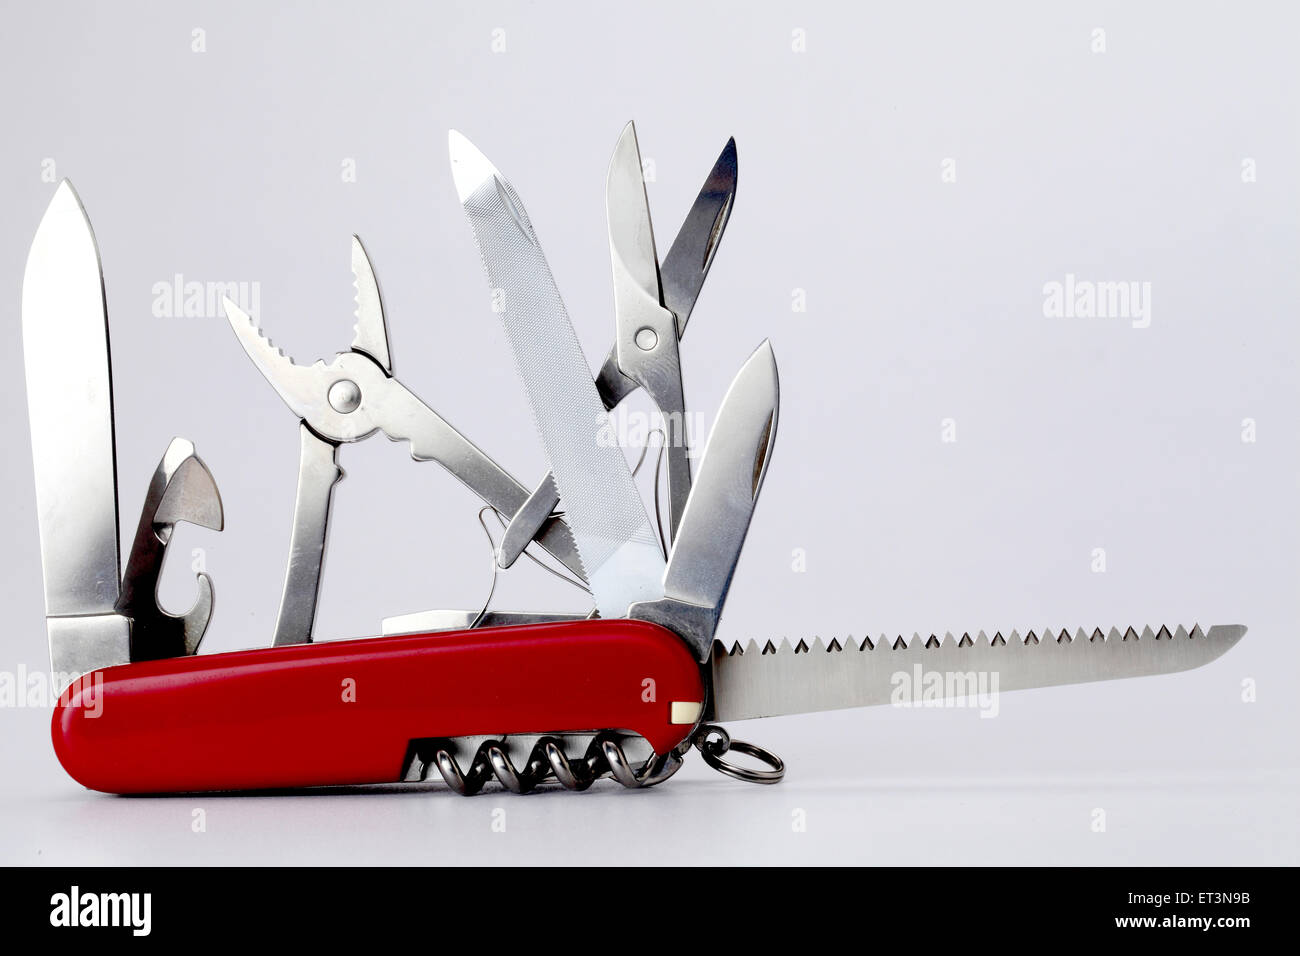 All purpose swiss army knife on white - Stock Image